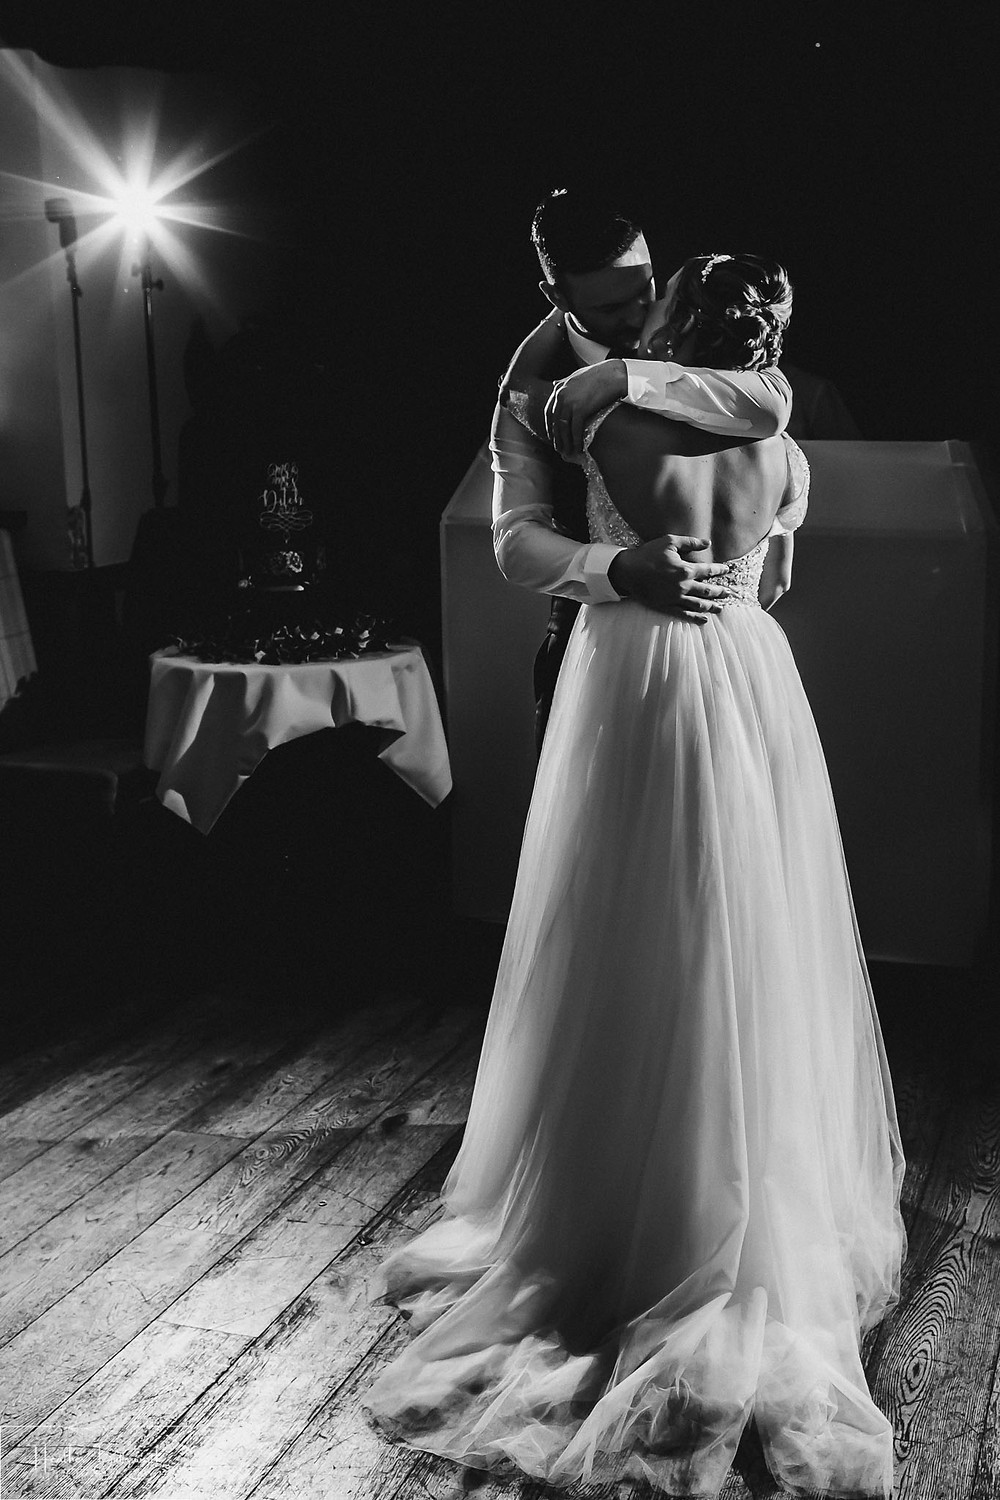 brides and groom first dance wedding photography at the woodman inn Yorkshire leeds photographer